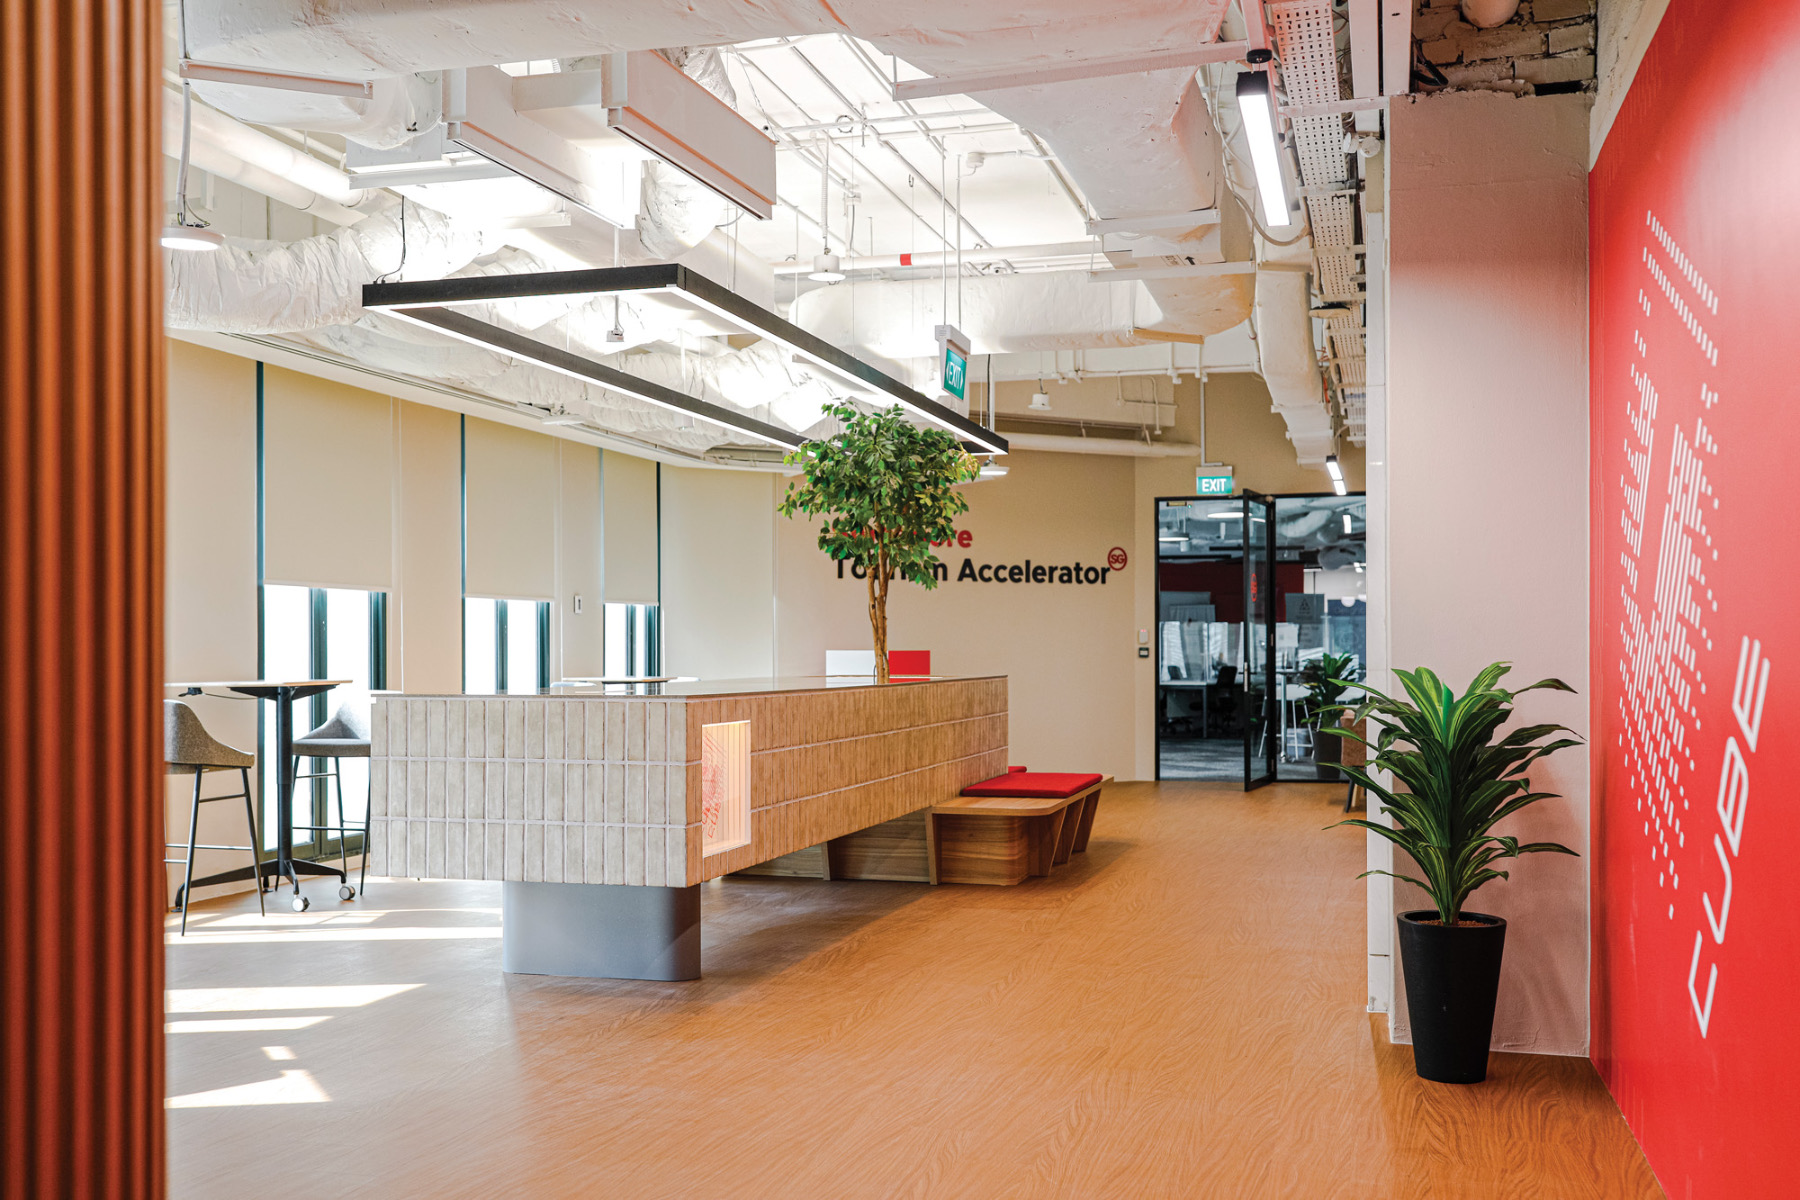 singapore-tourism-board-office-7